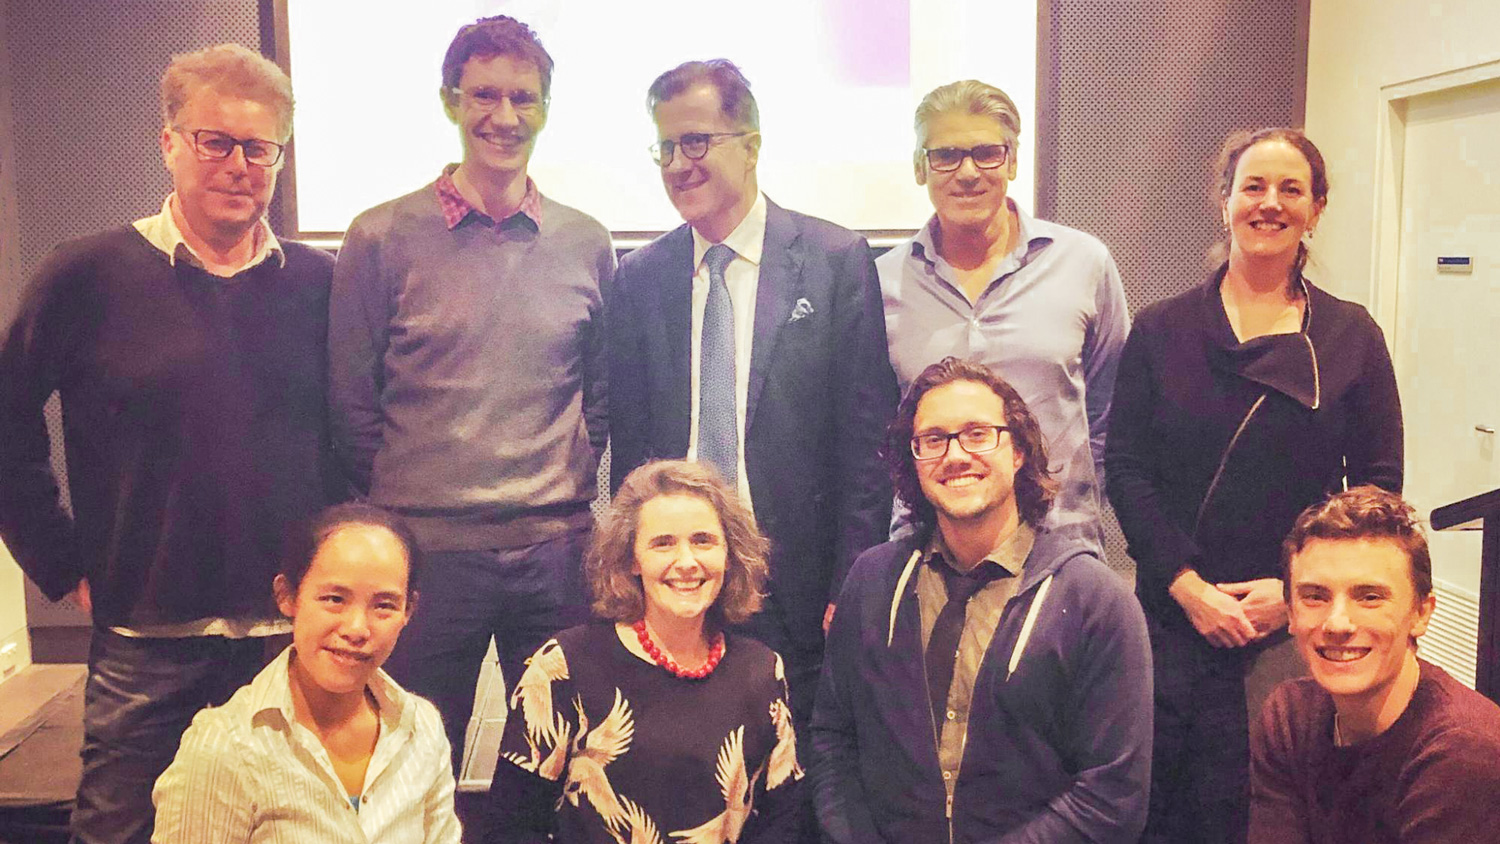 Academics and students pose for a pic after the 2019 Three Minute Thesis presentation at The University of Melbourne. Back row, L-R: As Prof Andy Martin, Prof James McCaw, Prof Aleks Owczarek, Dr Graham Phillips and Dr Robyn Schofield. Front row, L-R: Dr Wing Chan, Dr Jen Martin, Runner-up Giles Adams and Rohan Byrne. Image: Rohan Byrne.